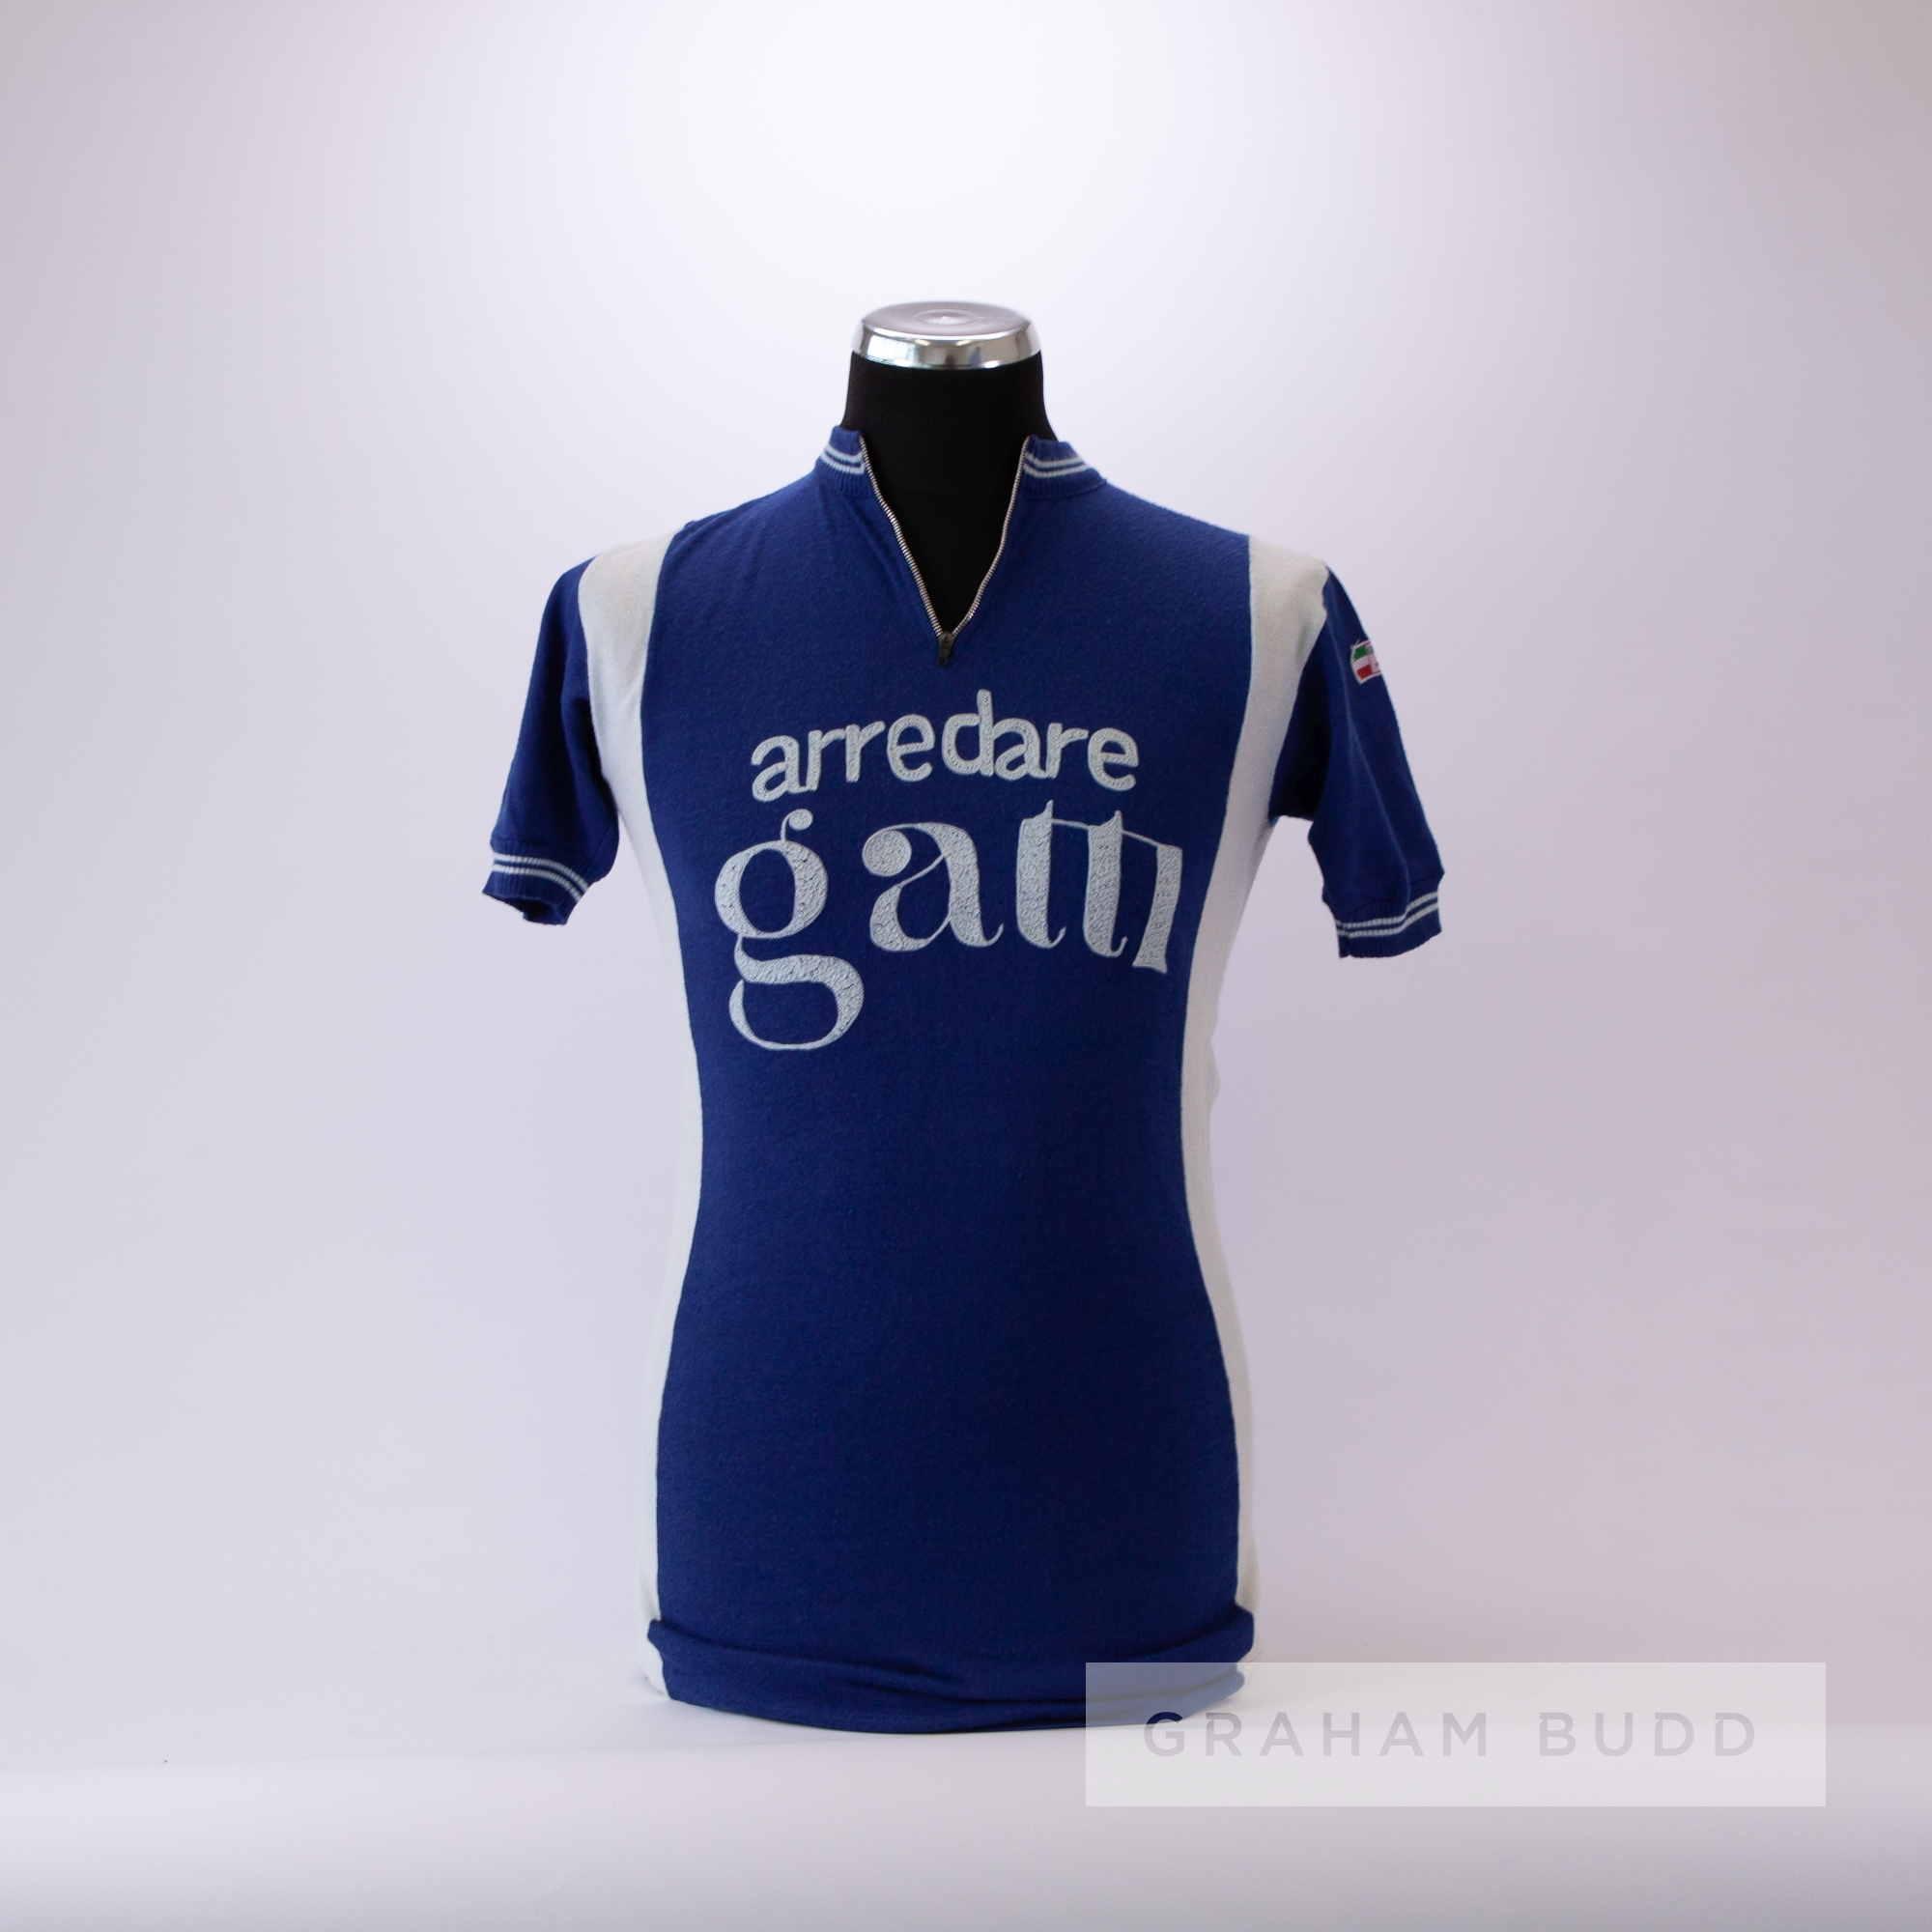 1979 blue and white vintage Italian Gianni Motta Eroica Cycling team race/tour jersey, scarce, - Image 3 of 4